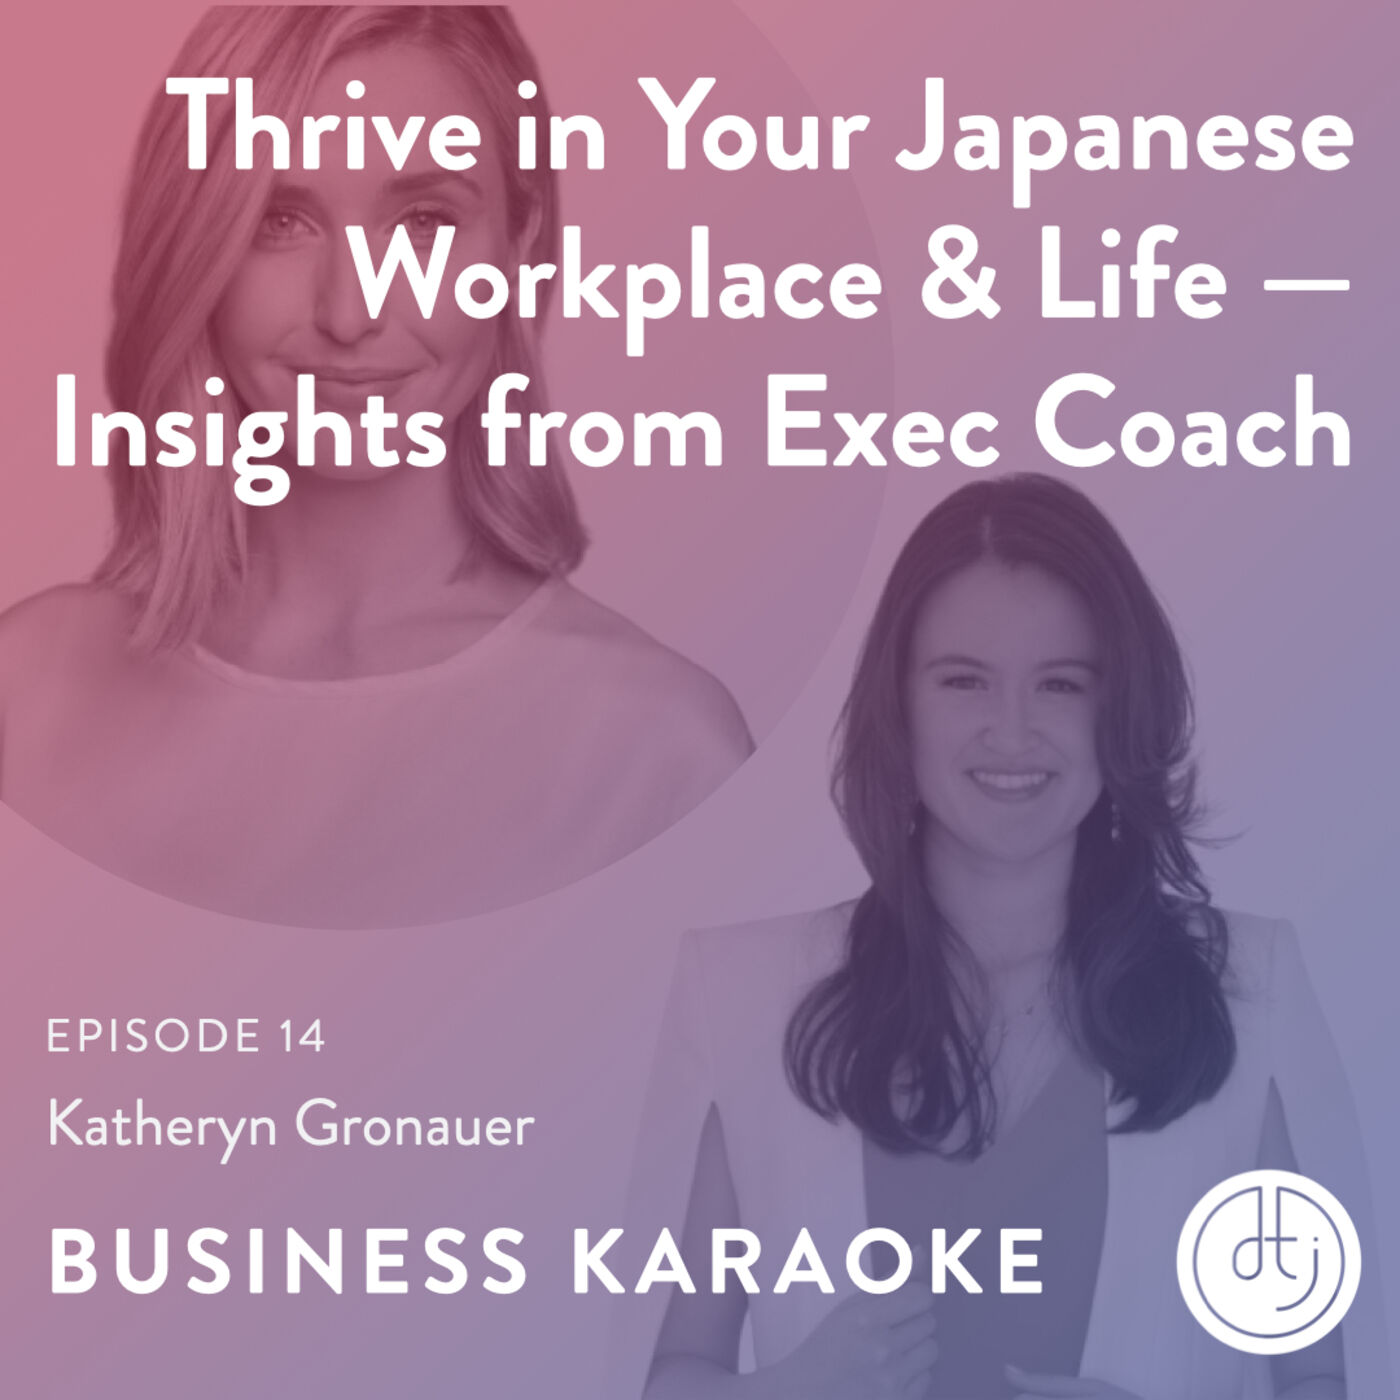 Ep. 14: Thrive in Your Japanese Workplace & Life —  Insights from Exec Coach, Katheryn Gronauer